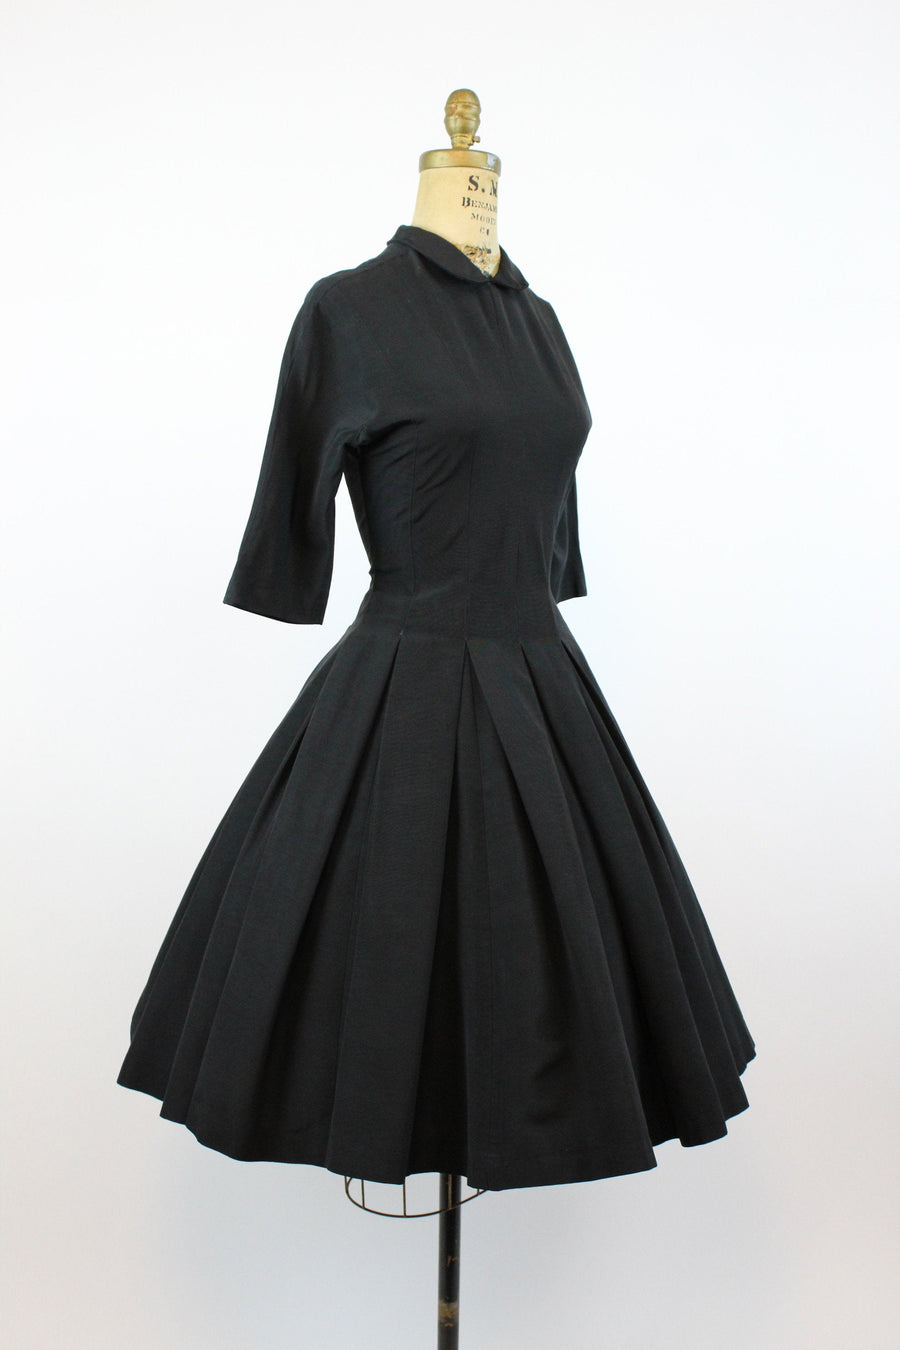 1950s Suzy Perette dress small | vintage peter pan collar full skirt | new in